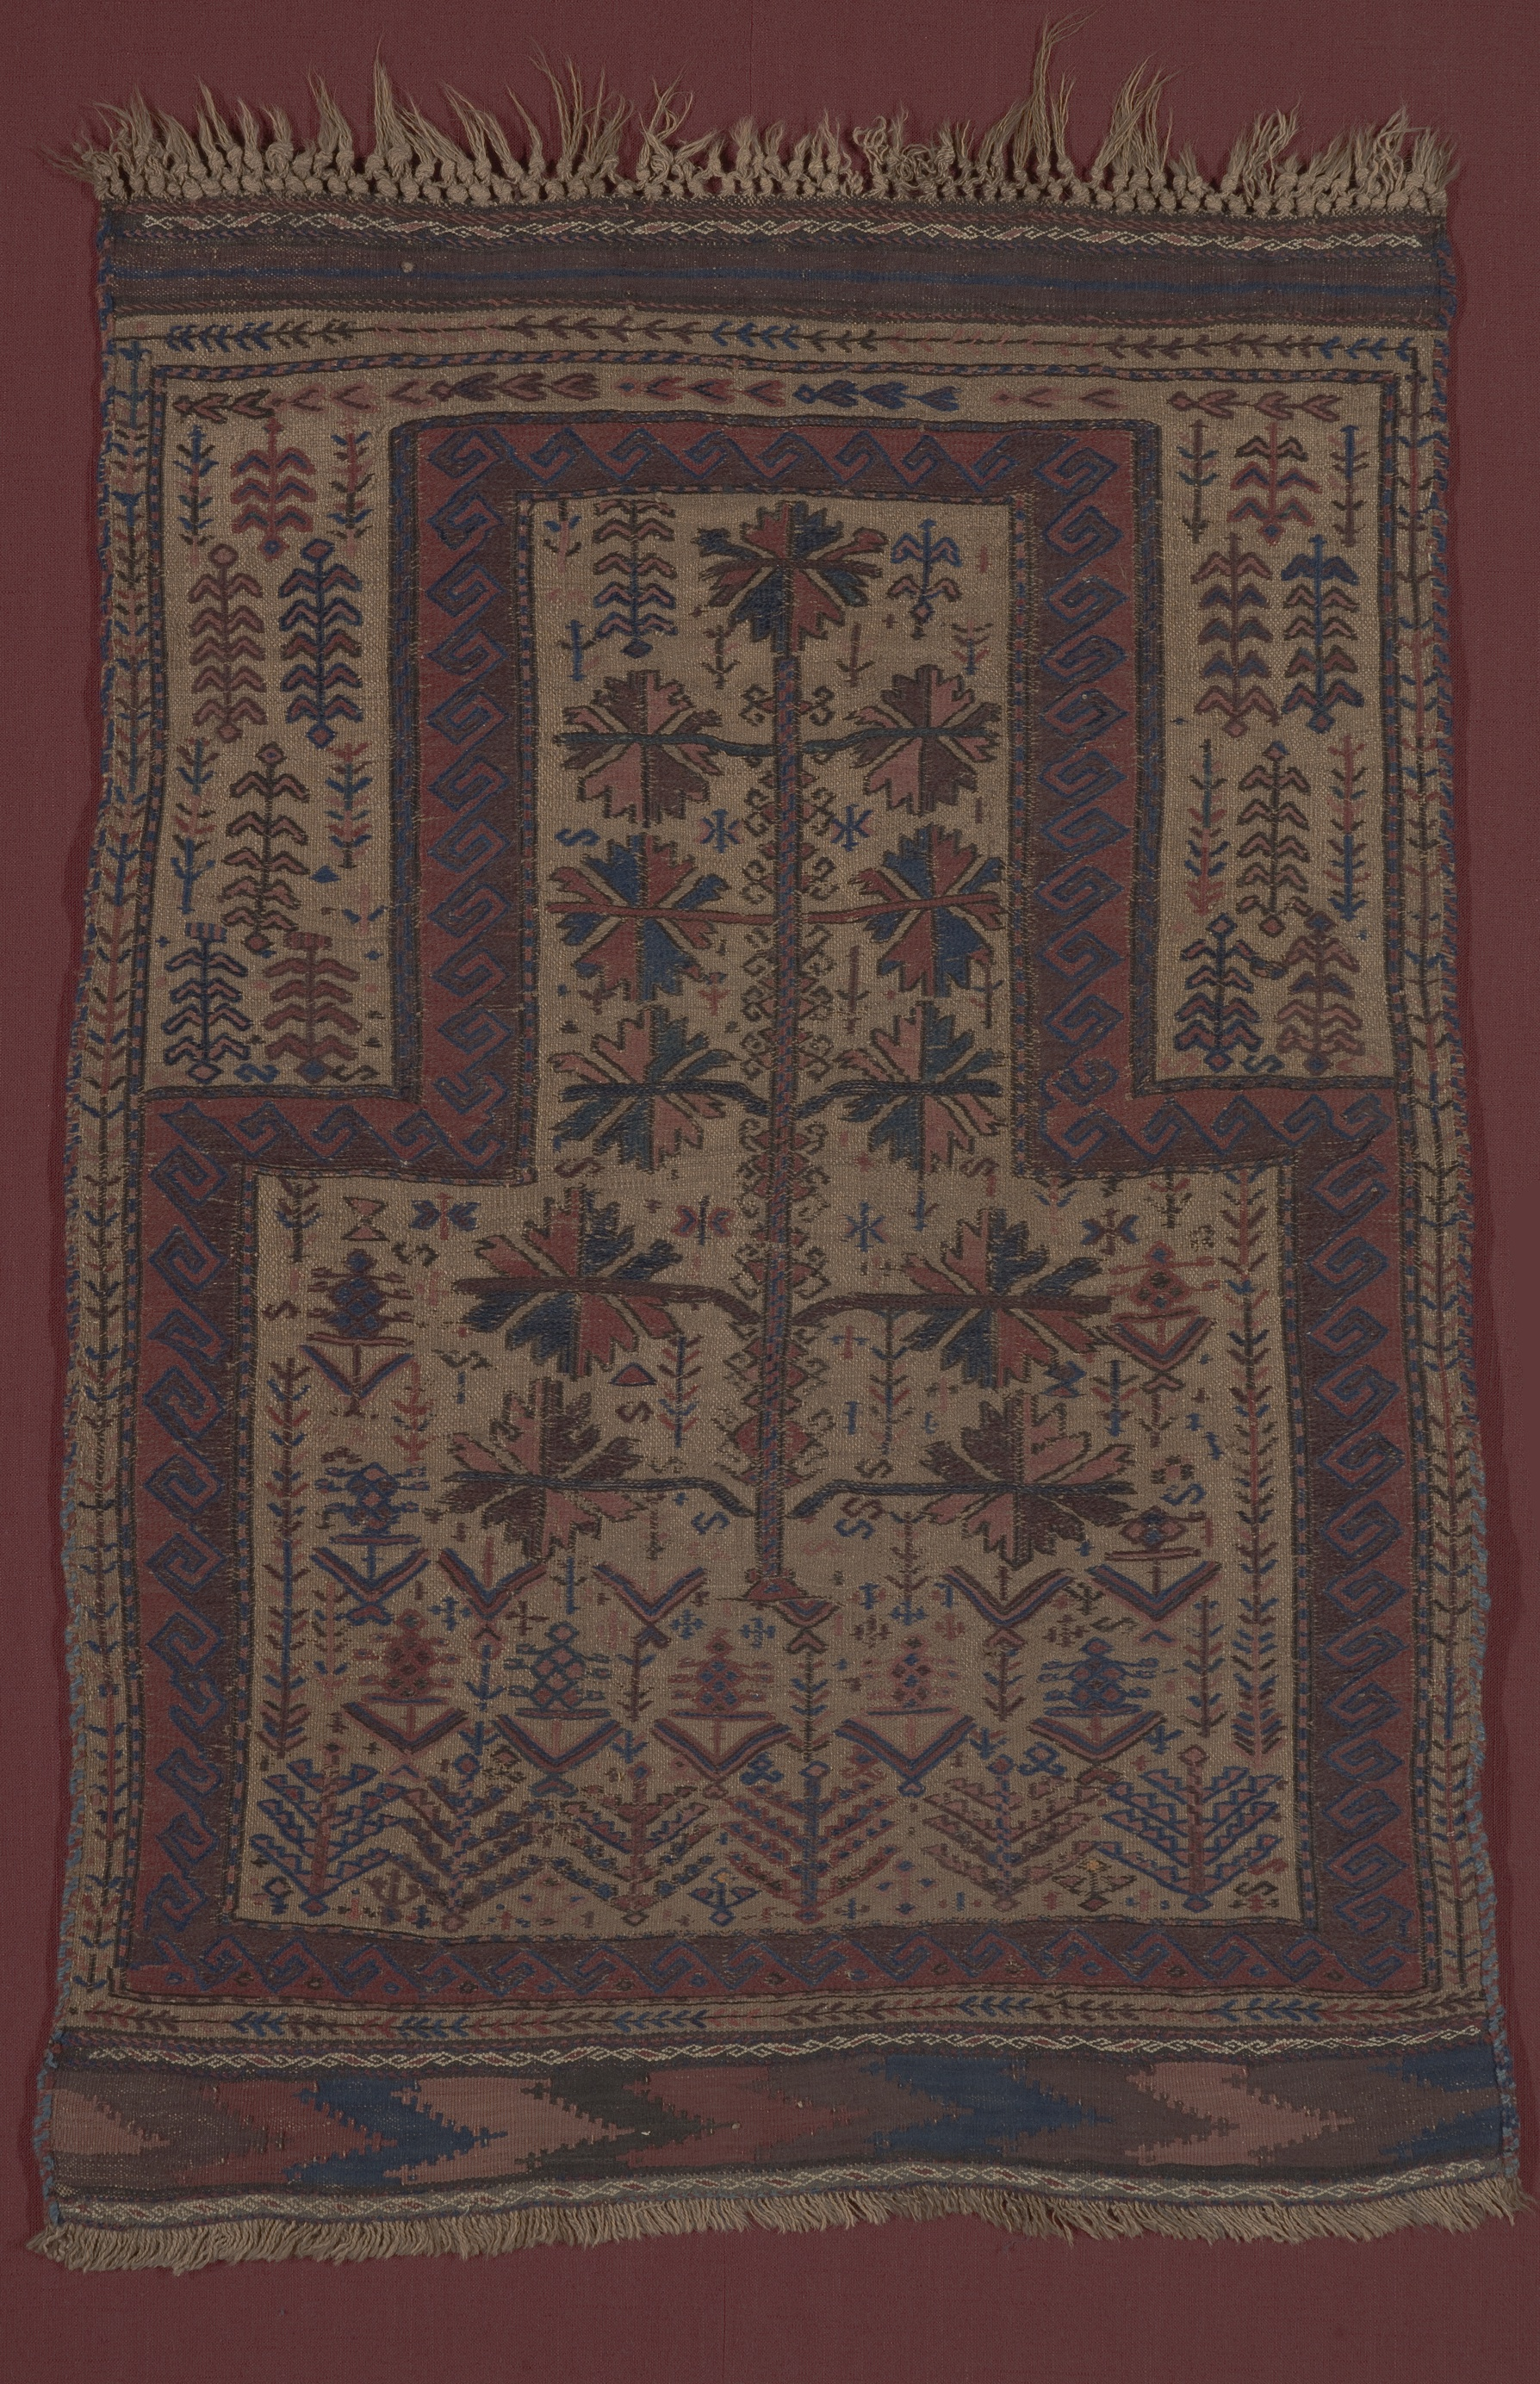 Fig. 4 Prayer rug showing Tree of Life design, 1880s